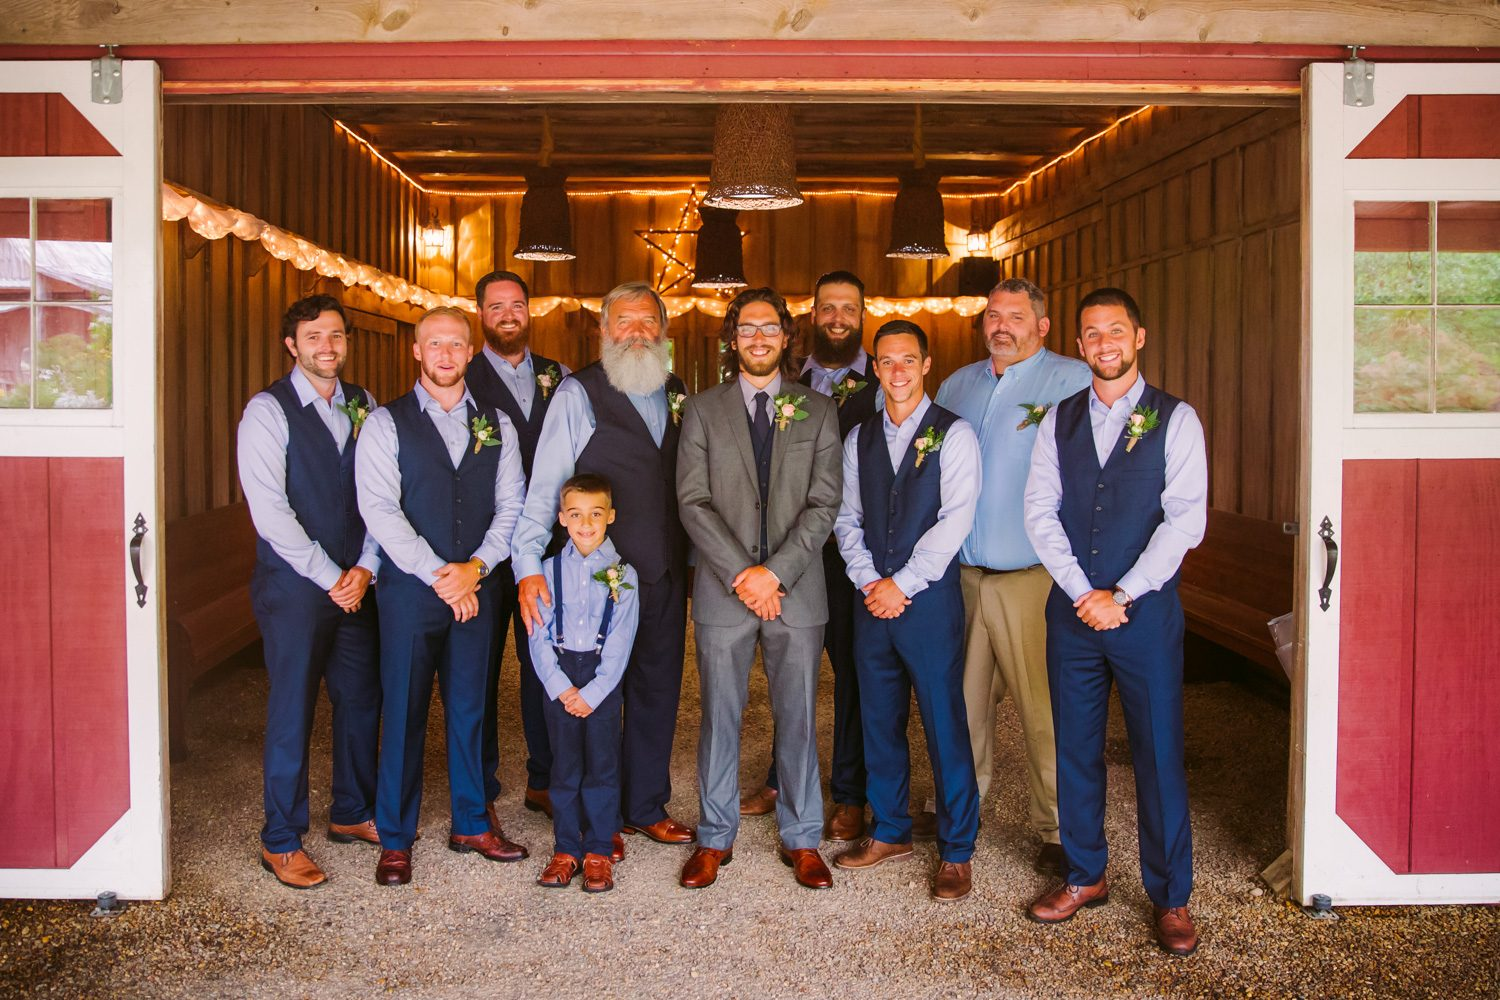 Groomsmen Portrait Sawyer Family Farmstead Cashiers NC Wedding Photographers